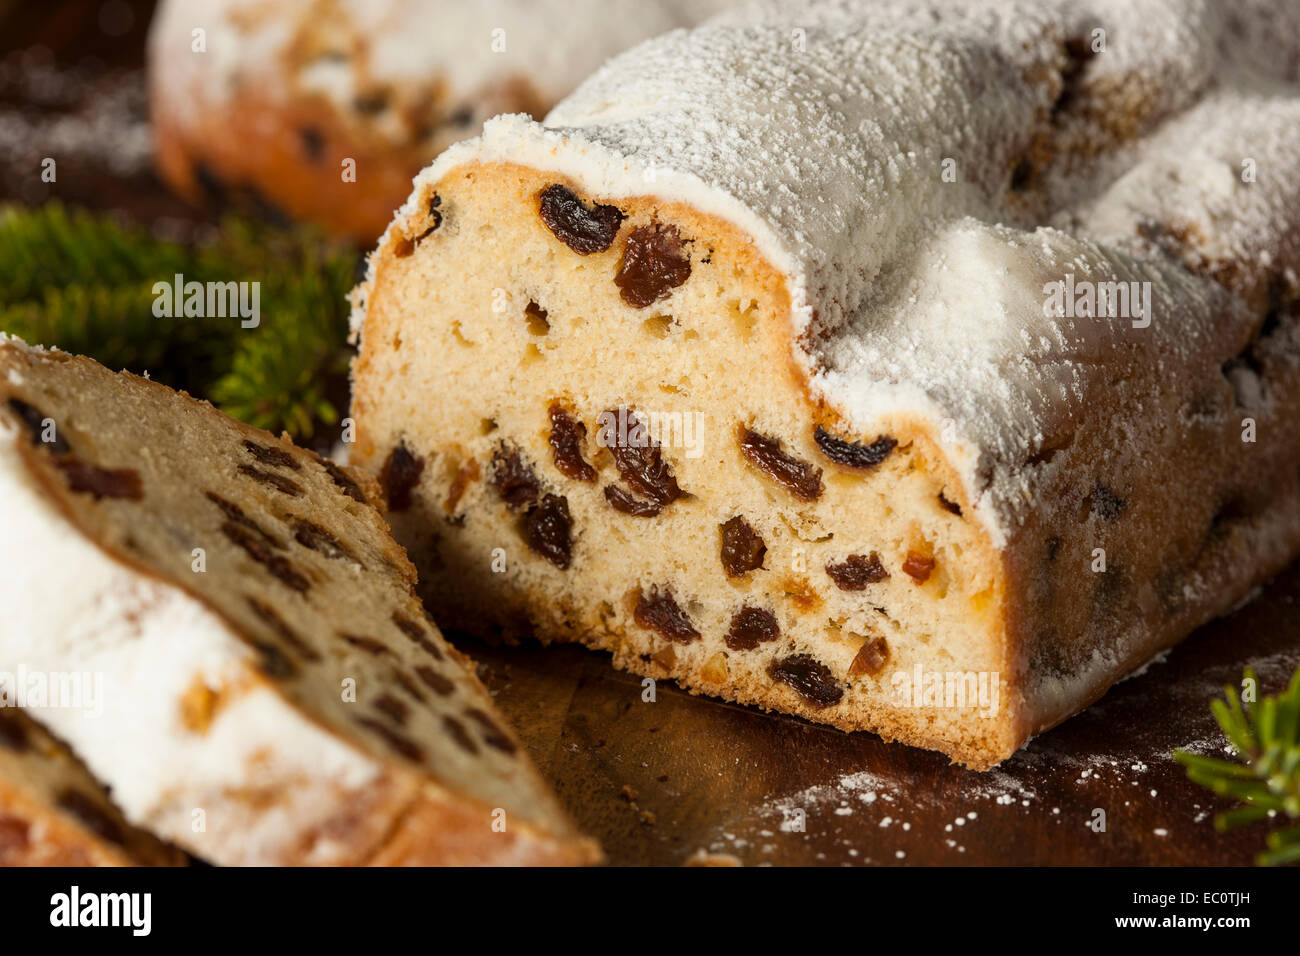 Festive Christmas German Stollen Bread with Powdered Sugar - Stock Image